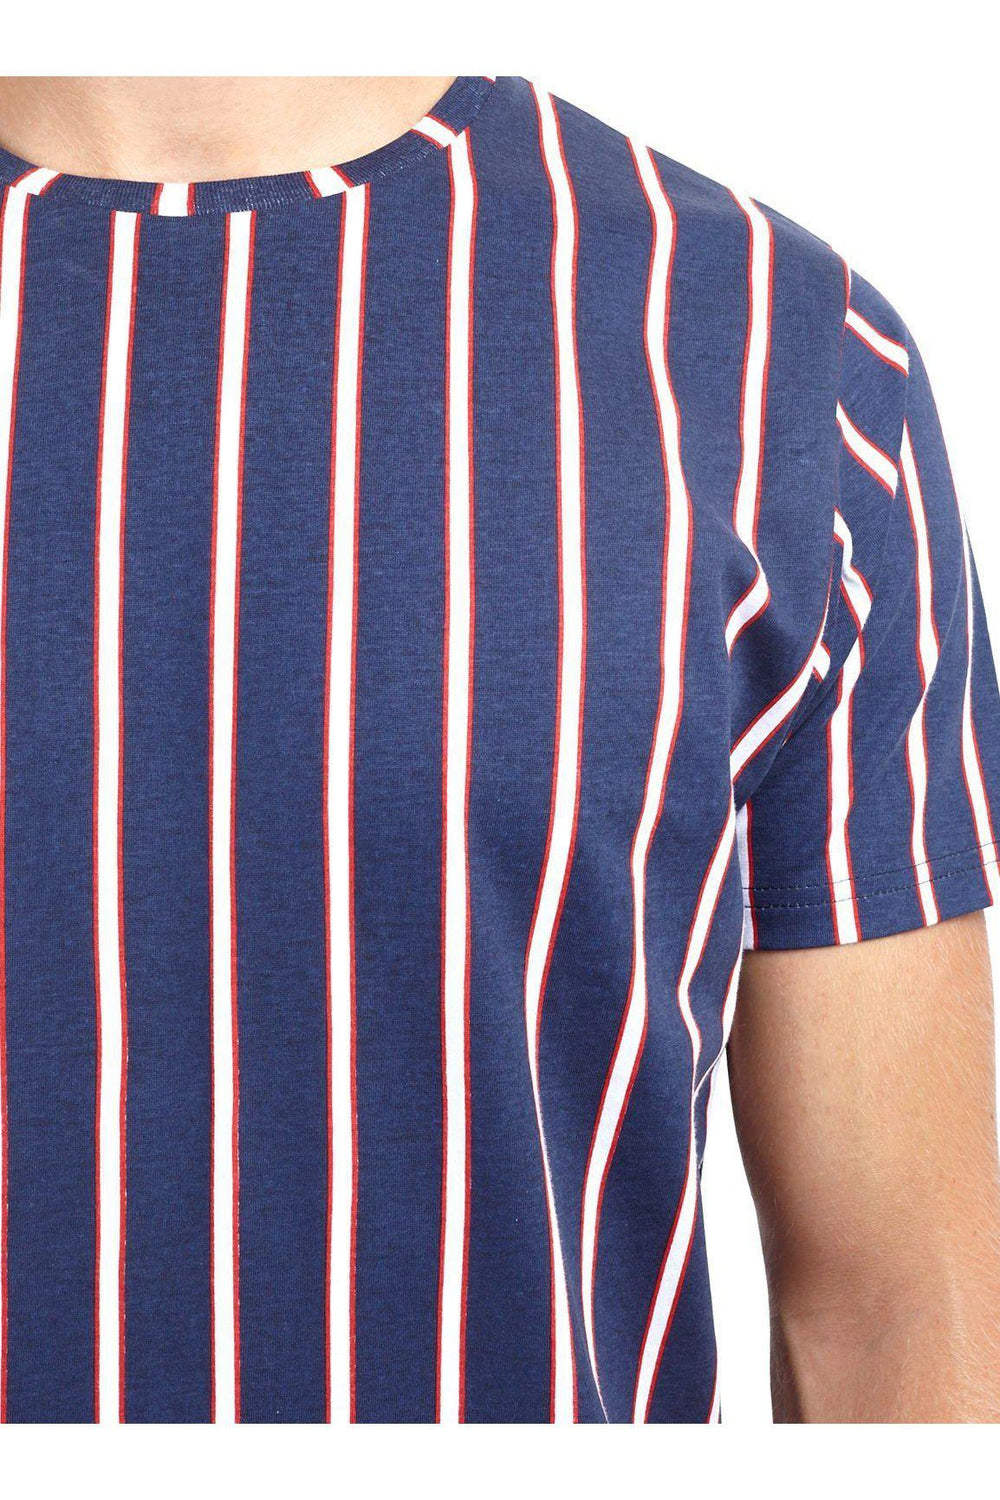 T-Shirts - Vertical Stripe T-Shirt Navy/ Red